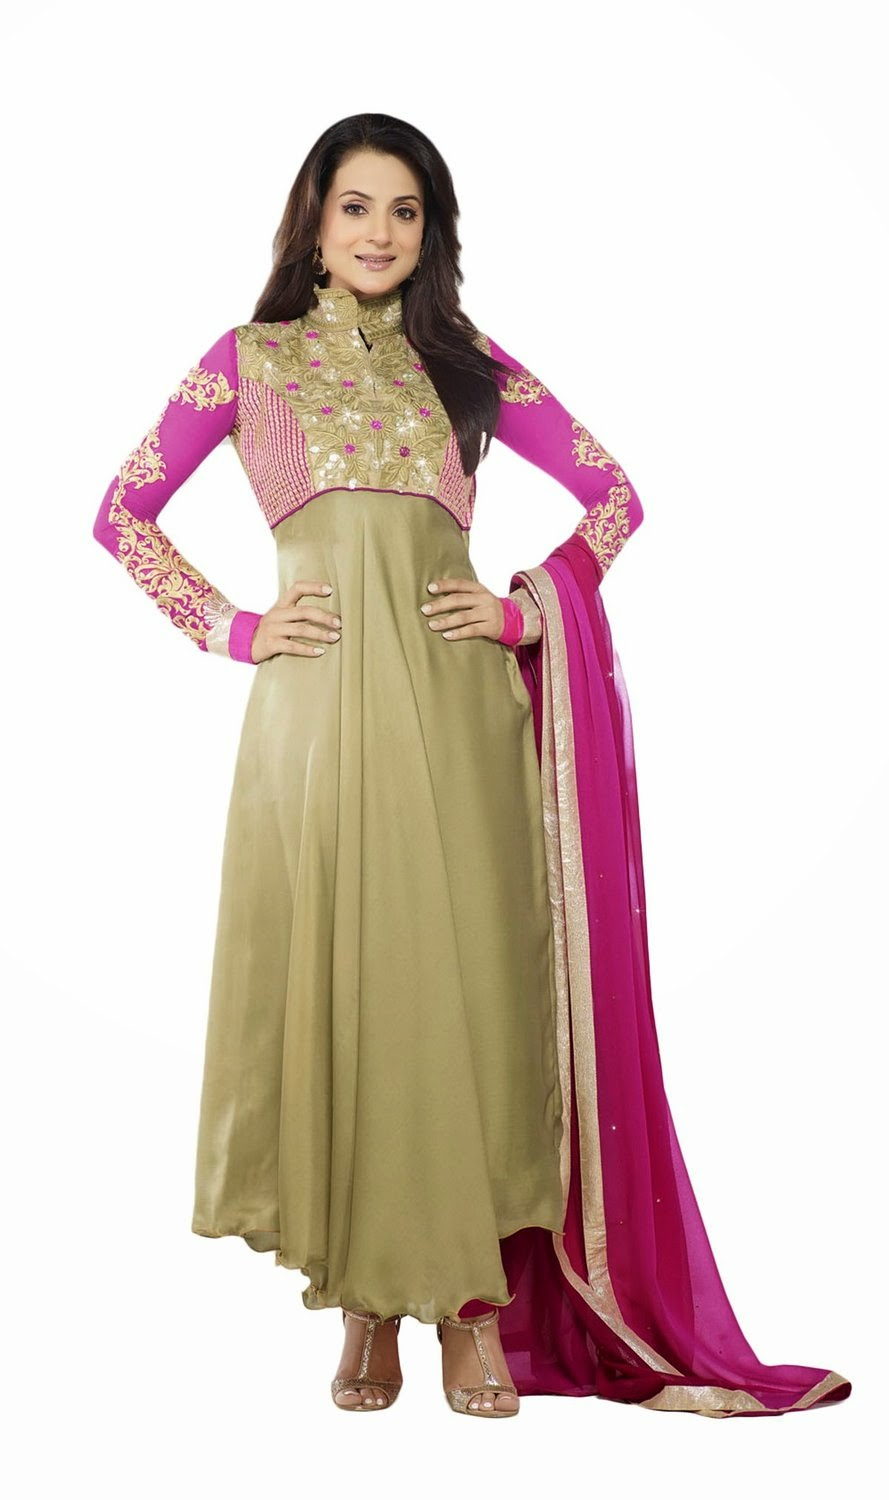 Designer Clothing Shopping Online Online Shopping Ethnic Wear